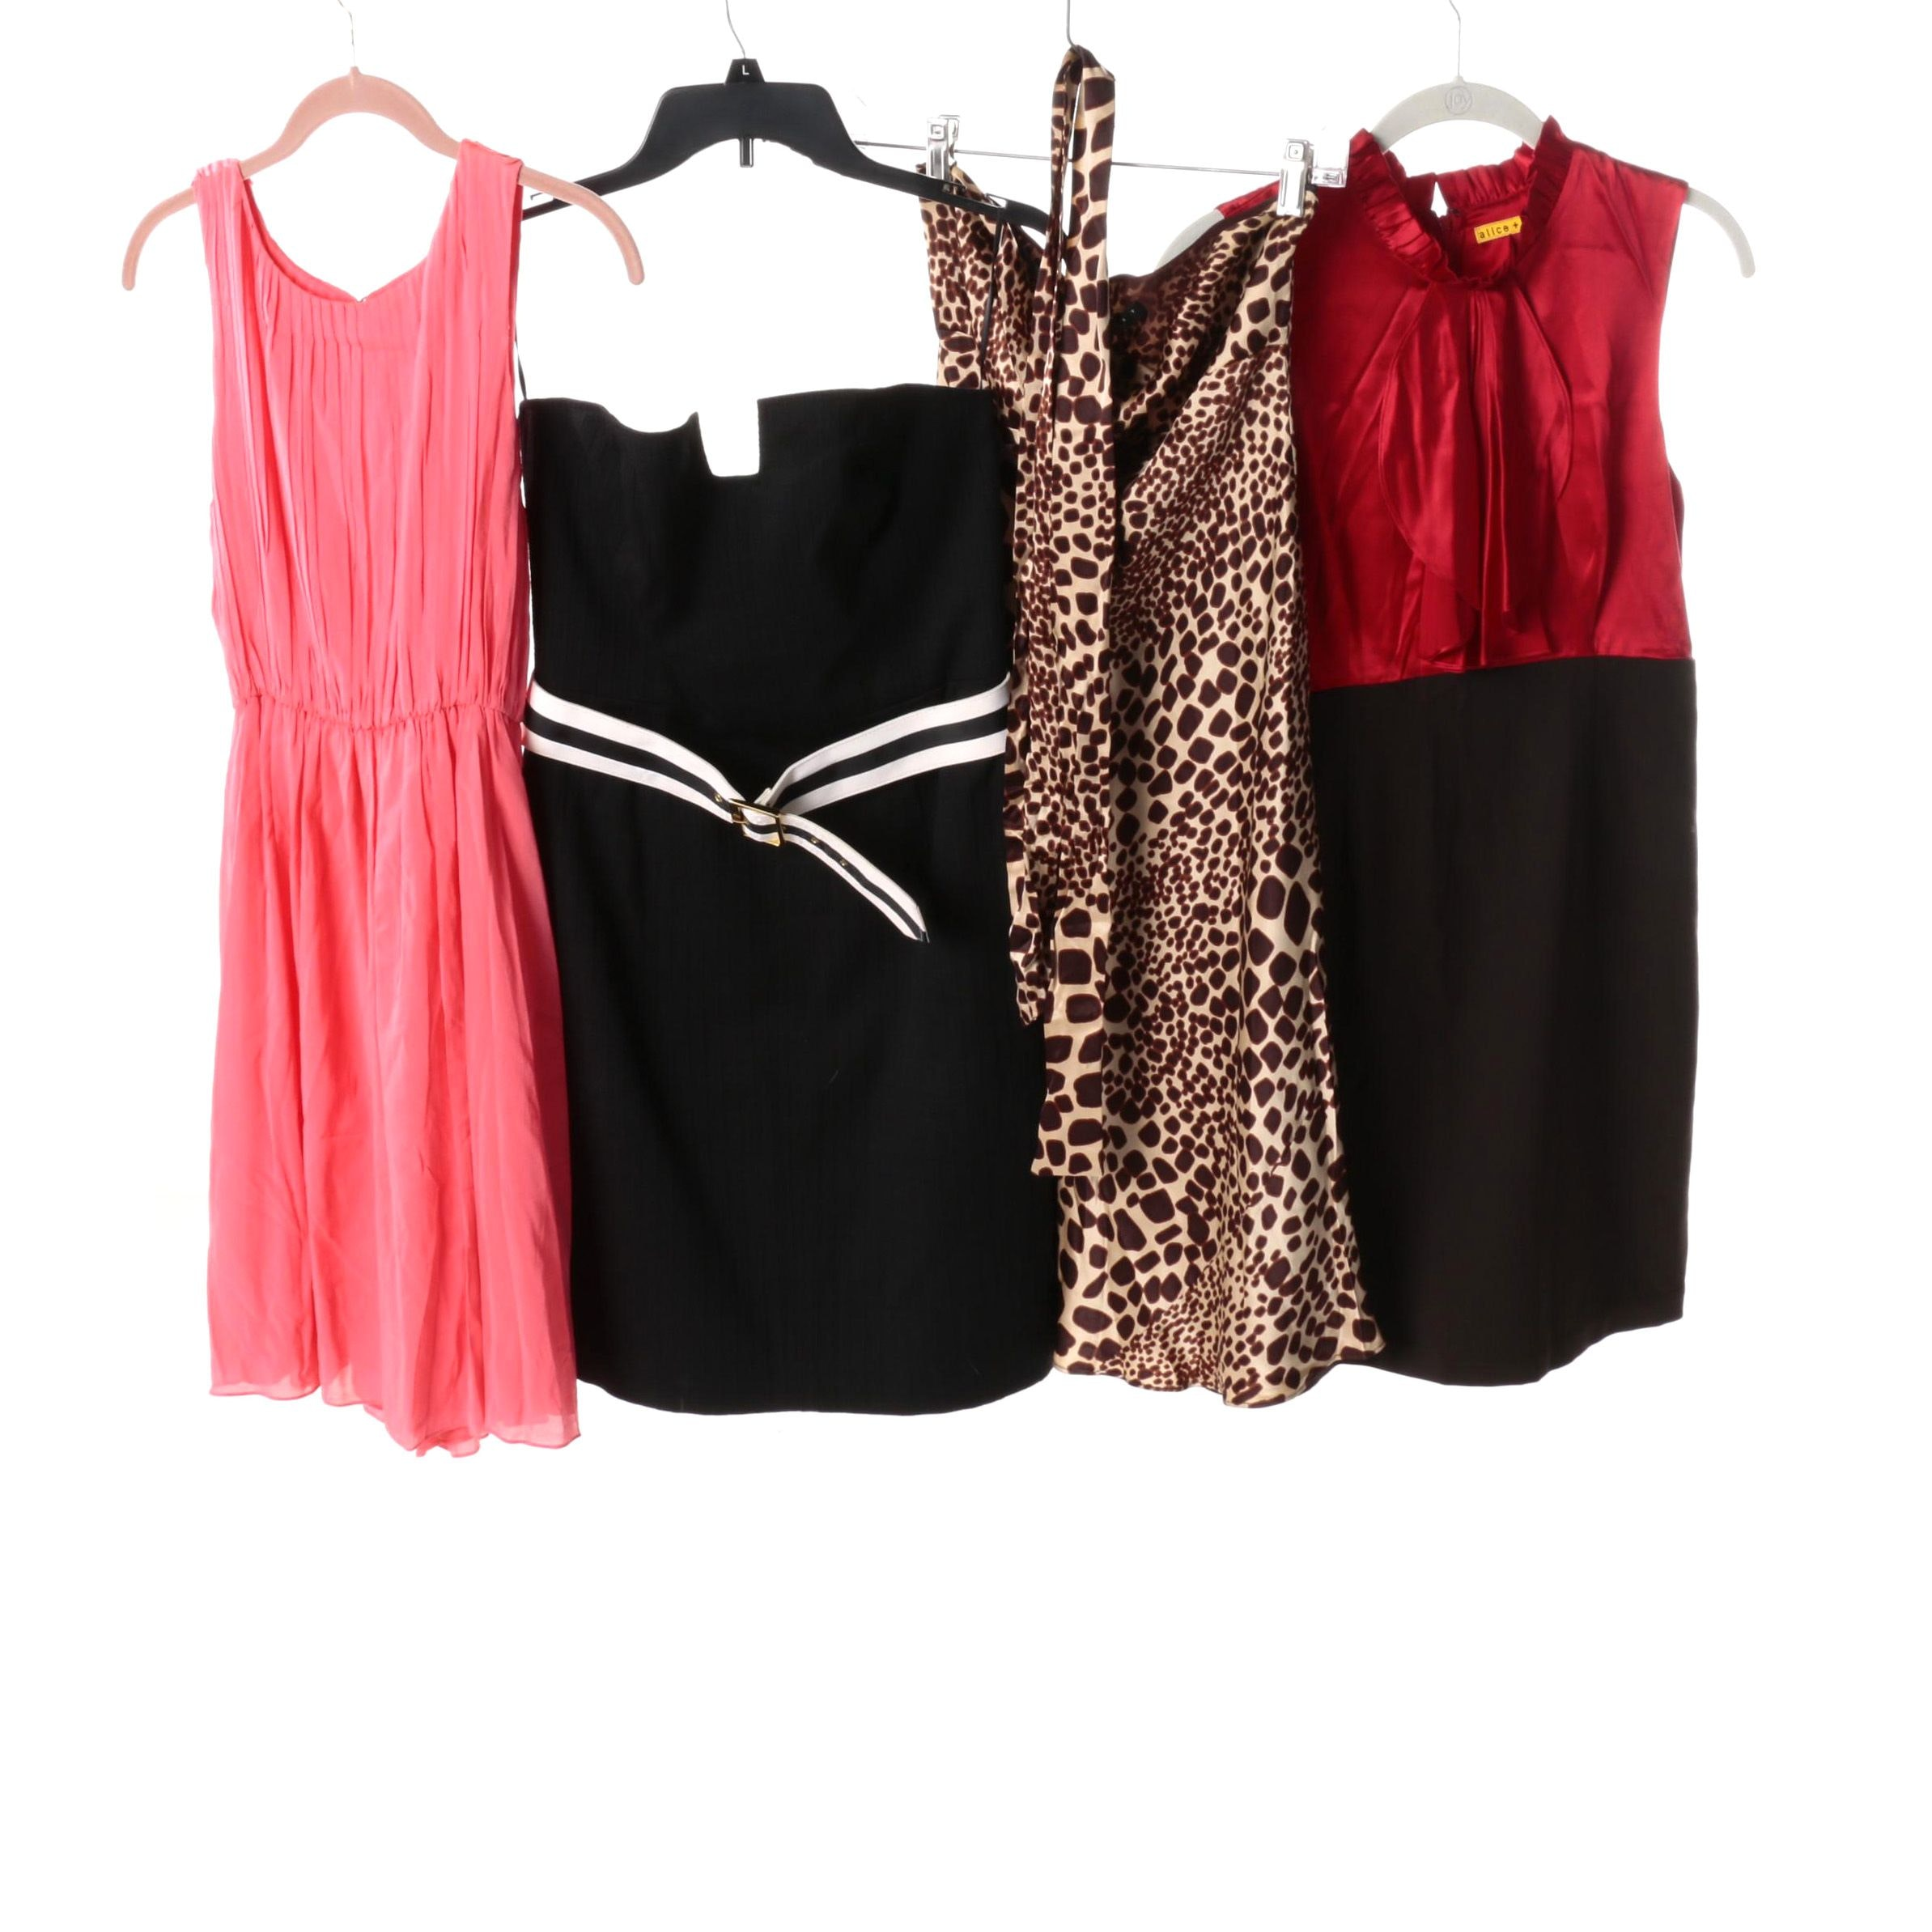 Women's Mini-Dress Assortment Featuring Alice + Olivia